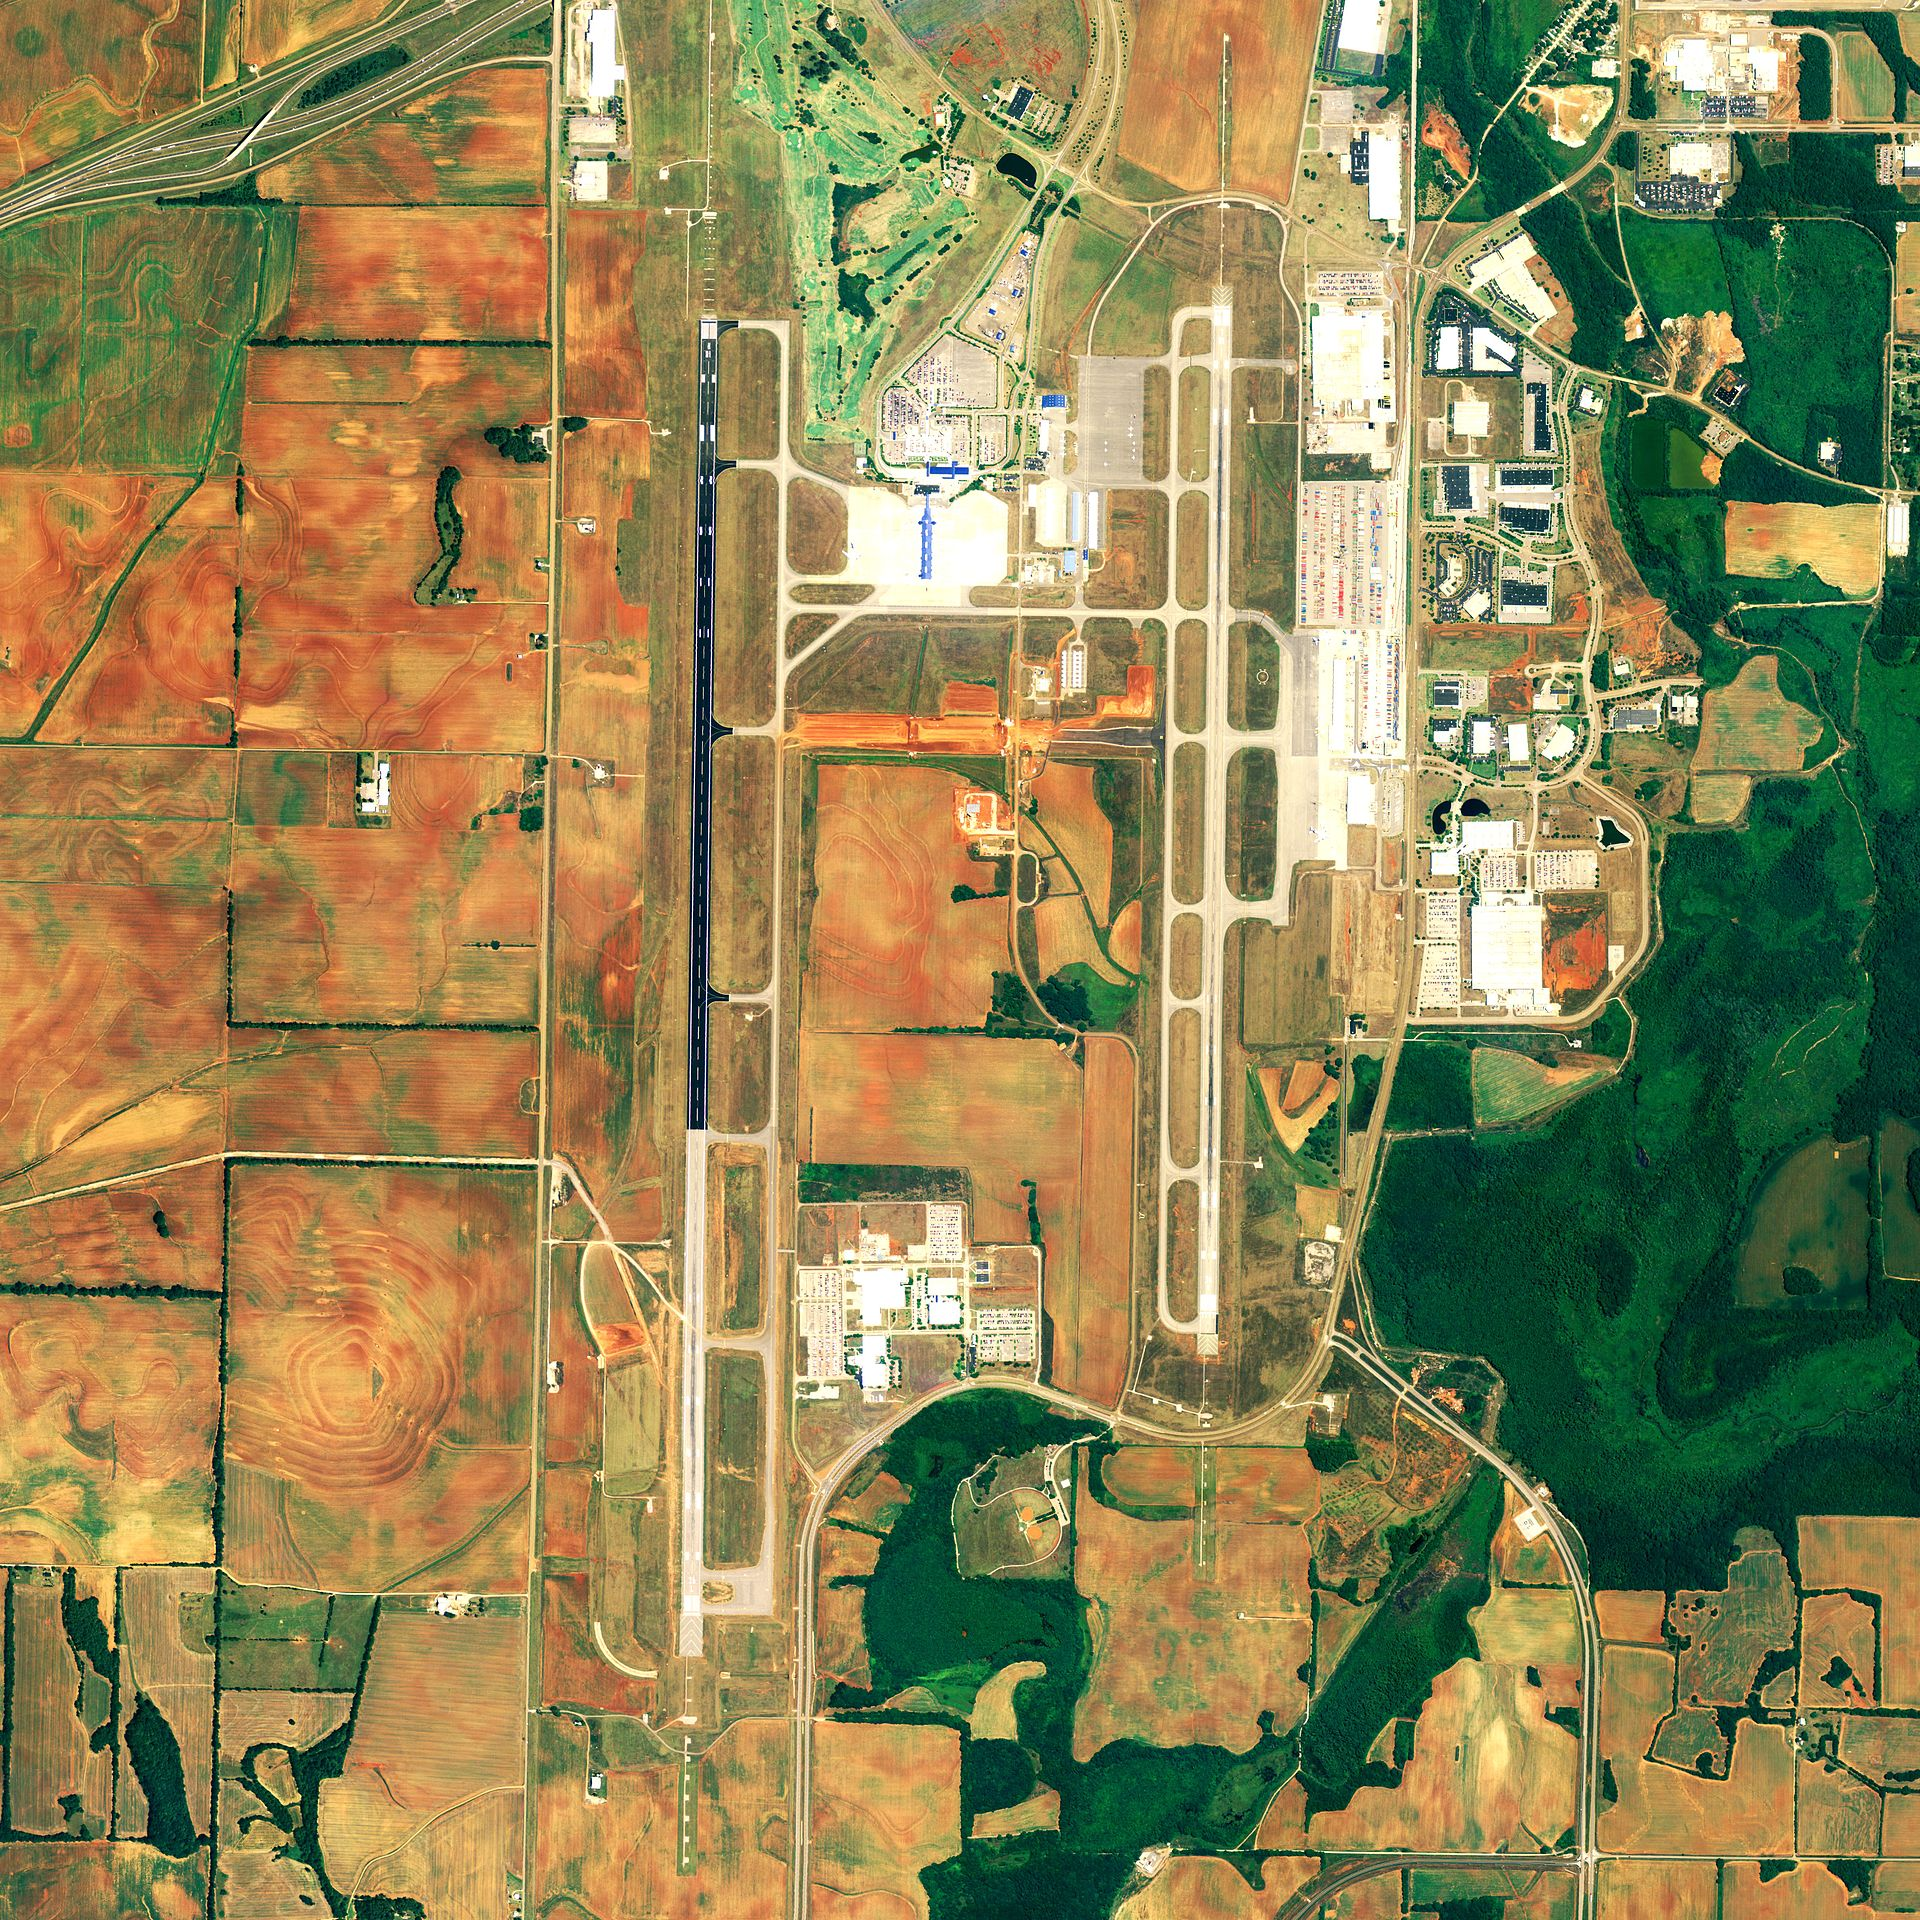 huntsville international airport wikipedia